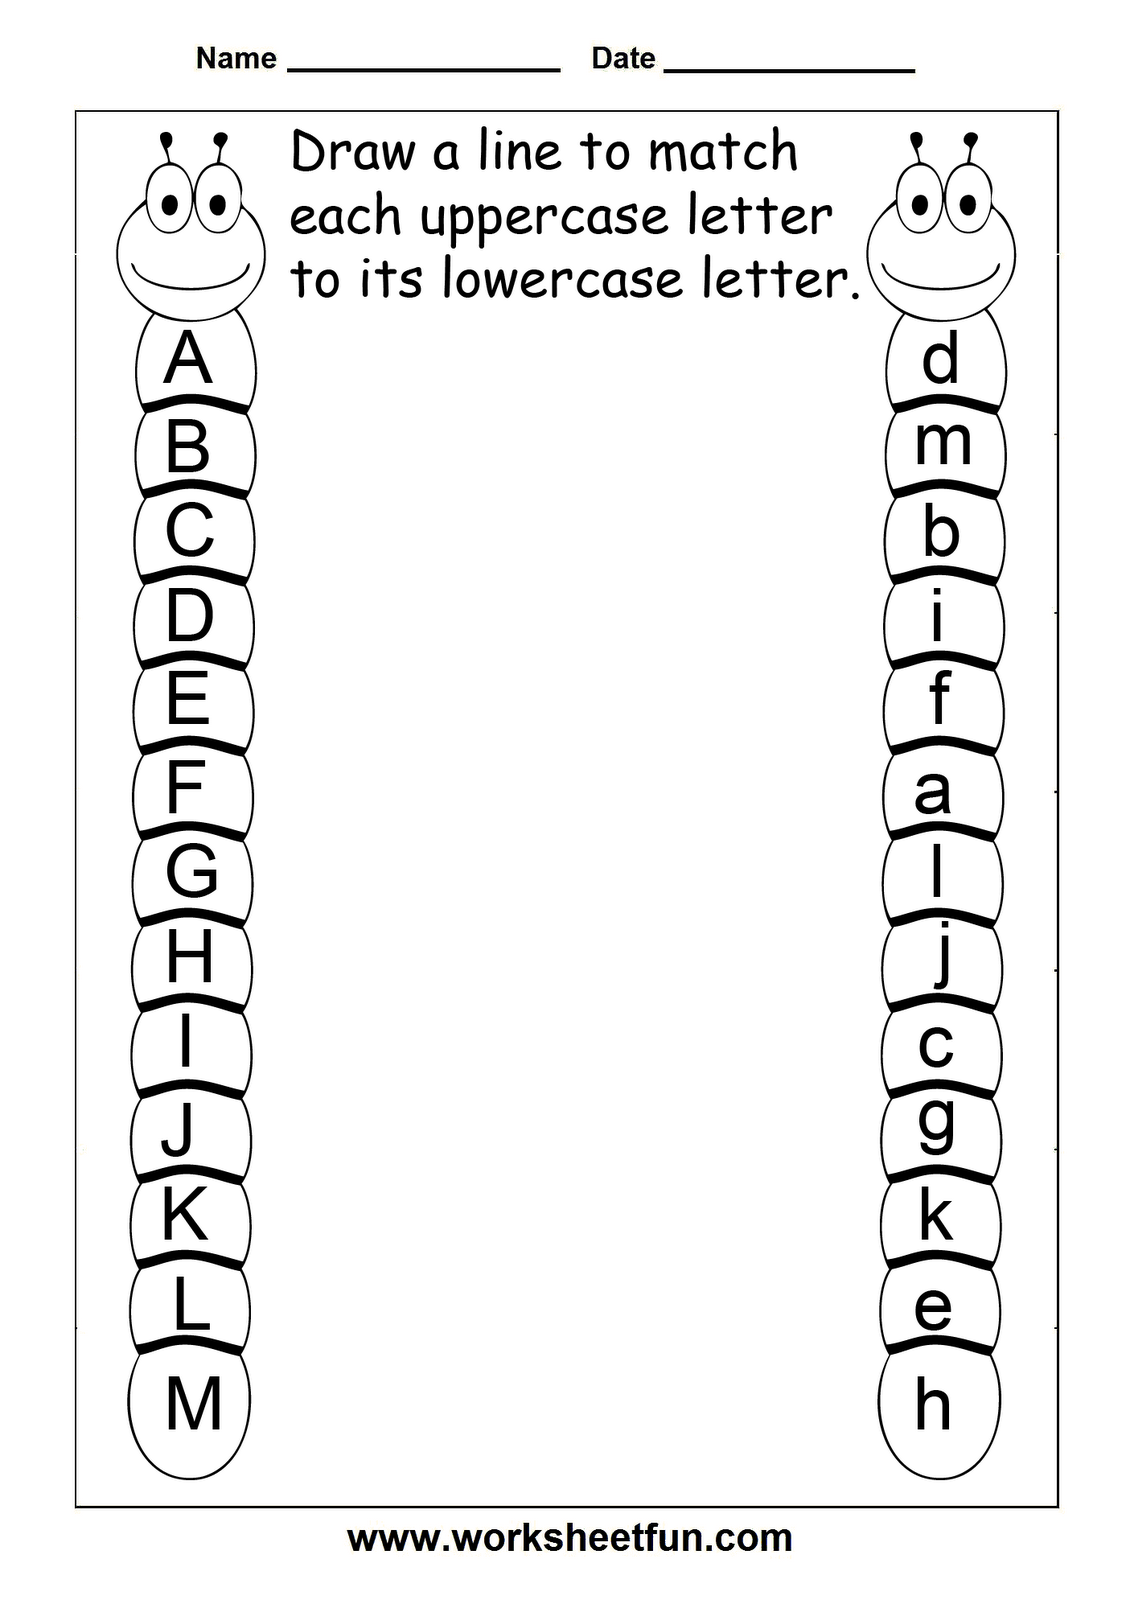 Match Uppercase And Lowercase Letters  13 Worksheets / FREE Printable  Worksheets